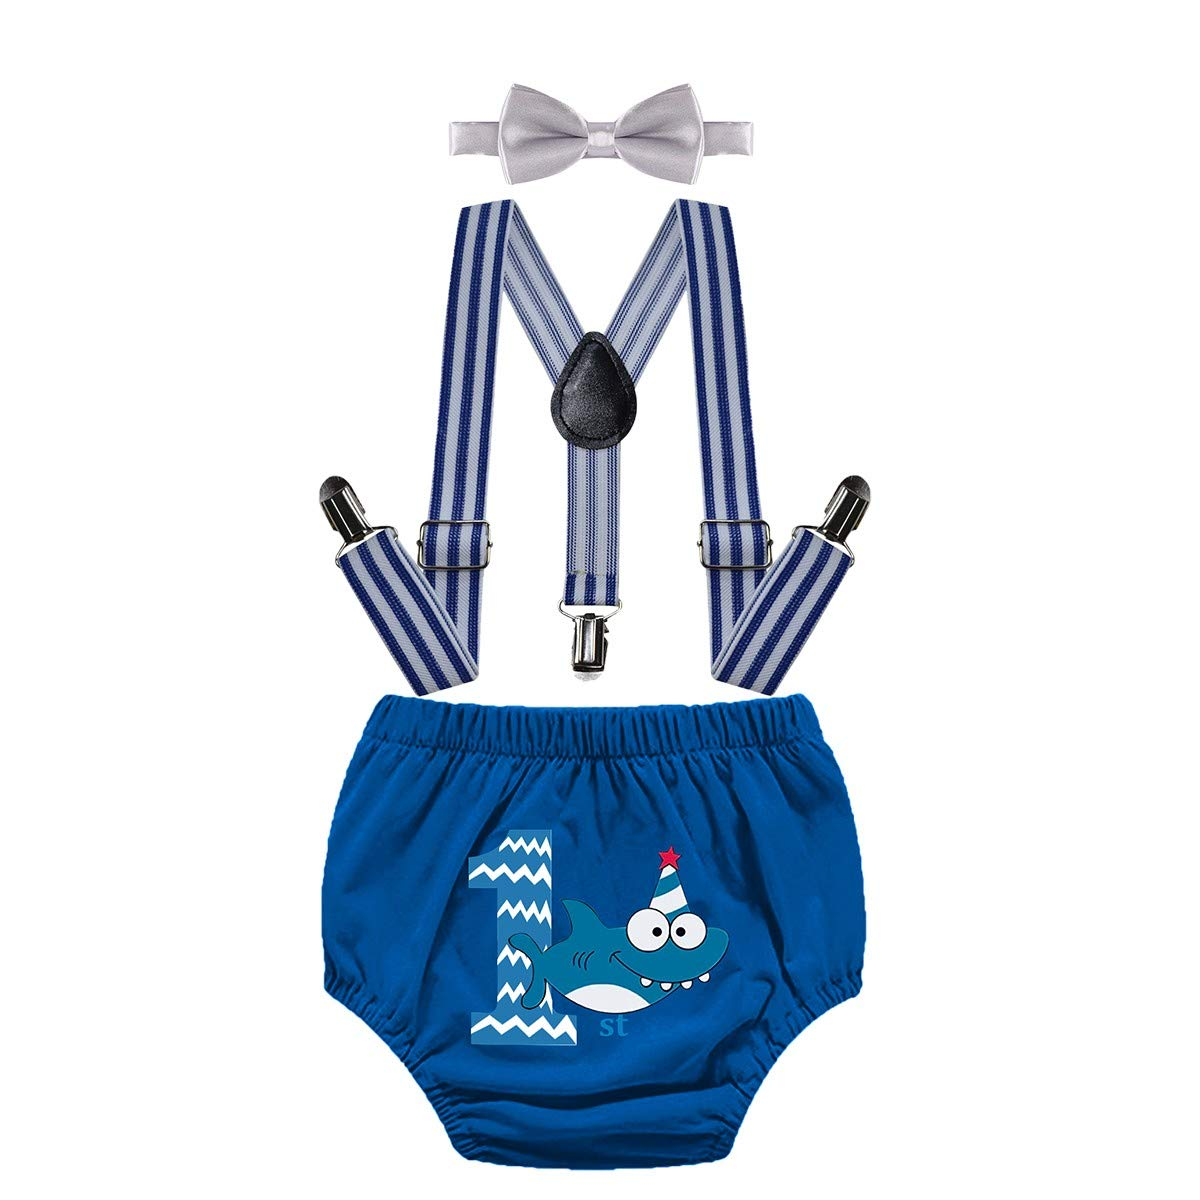 IZKIZF Baby Boy 1st Birthday Shark Cake Smash Outfits Diaper Suspenders Bow Tie